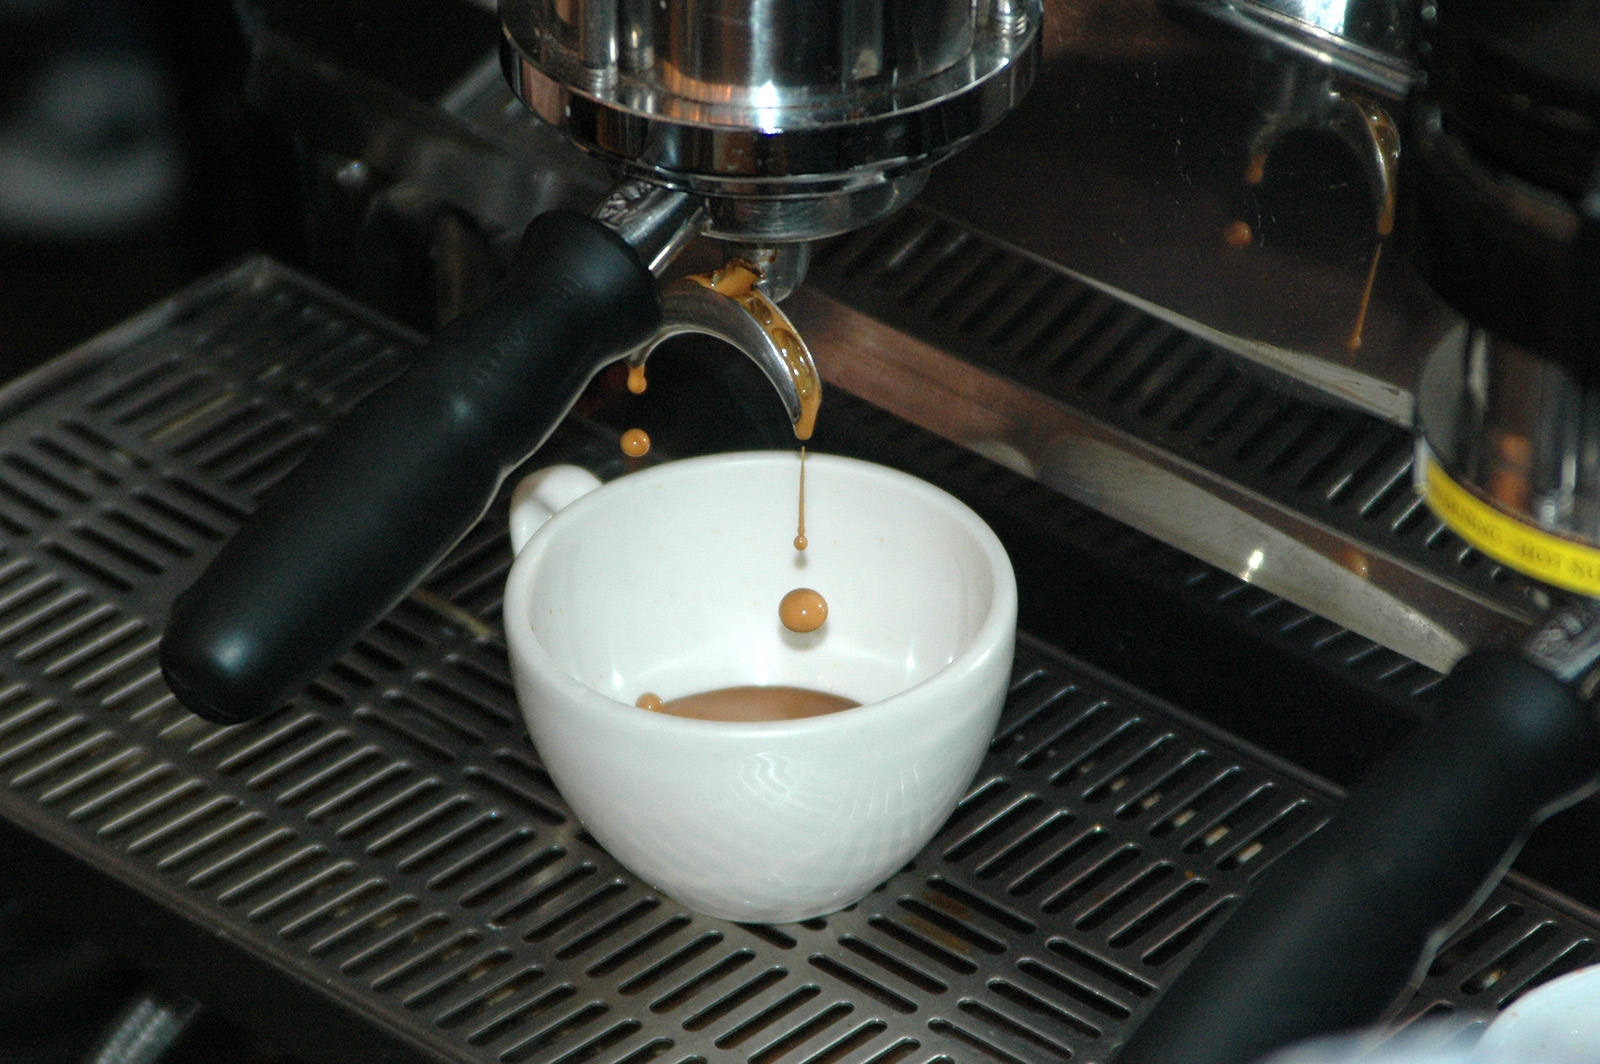 Image shows coffee dripping.